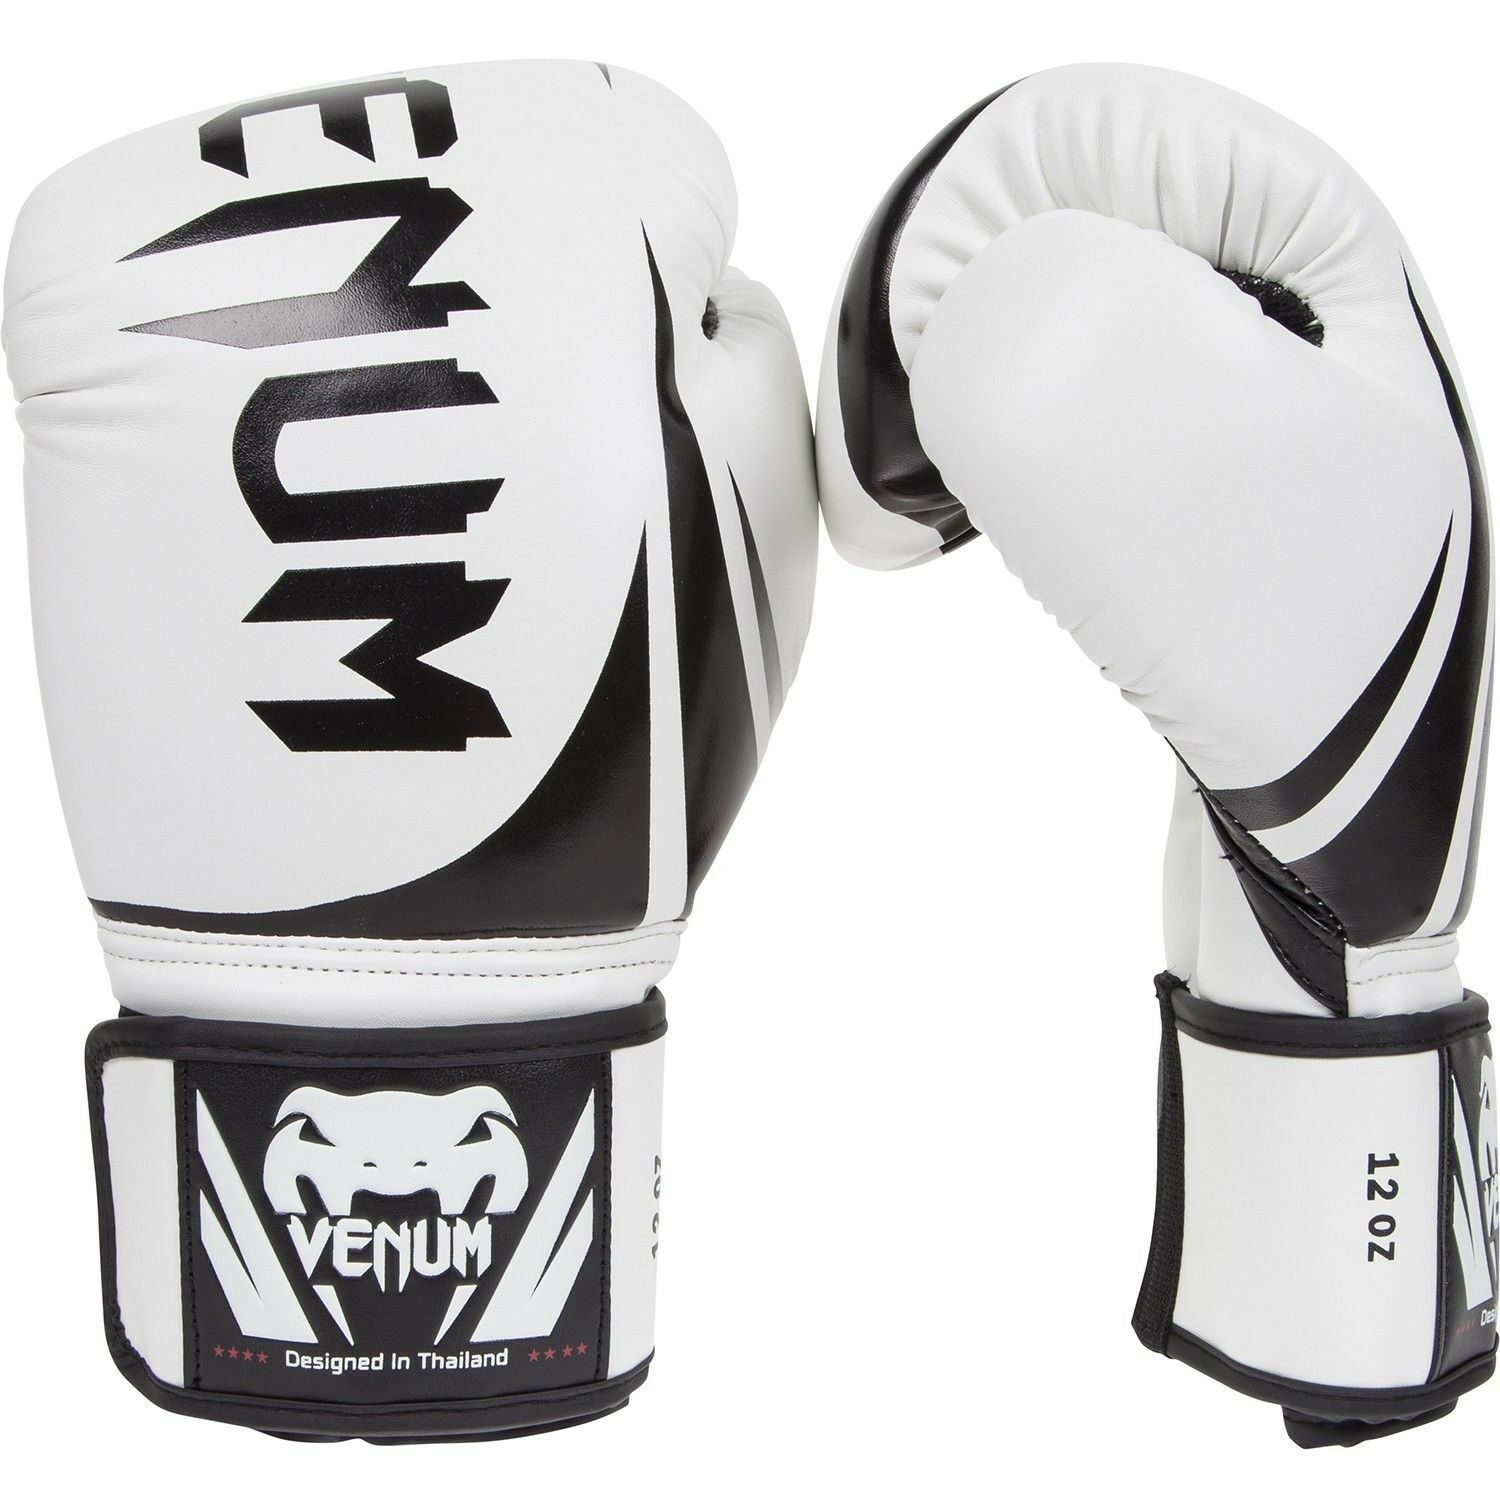 Venum Challenger 2.0 Boxing Gloves Weiß Thai Ice MMA Sparring Muay Thai Weiß Gloves 10oz b142a7